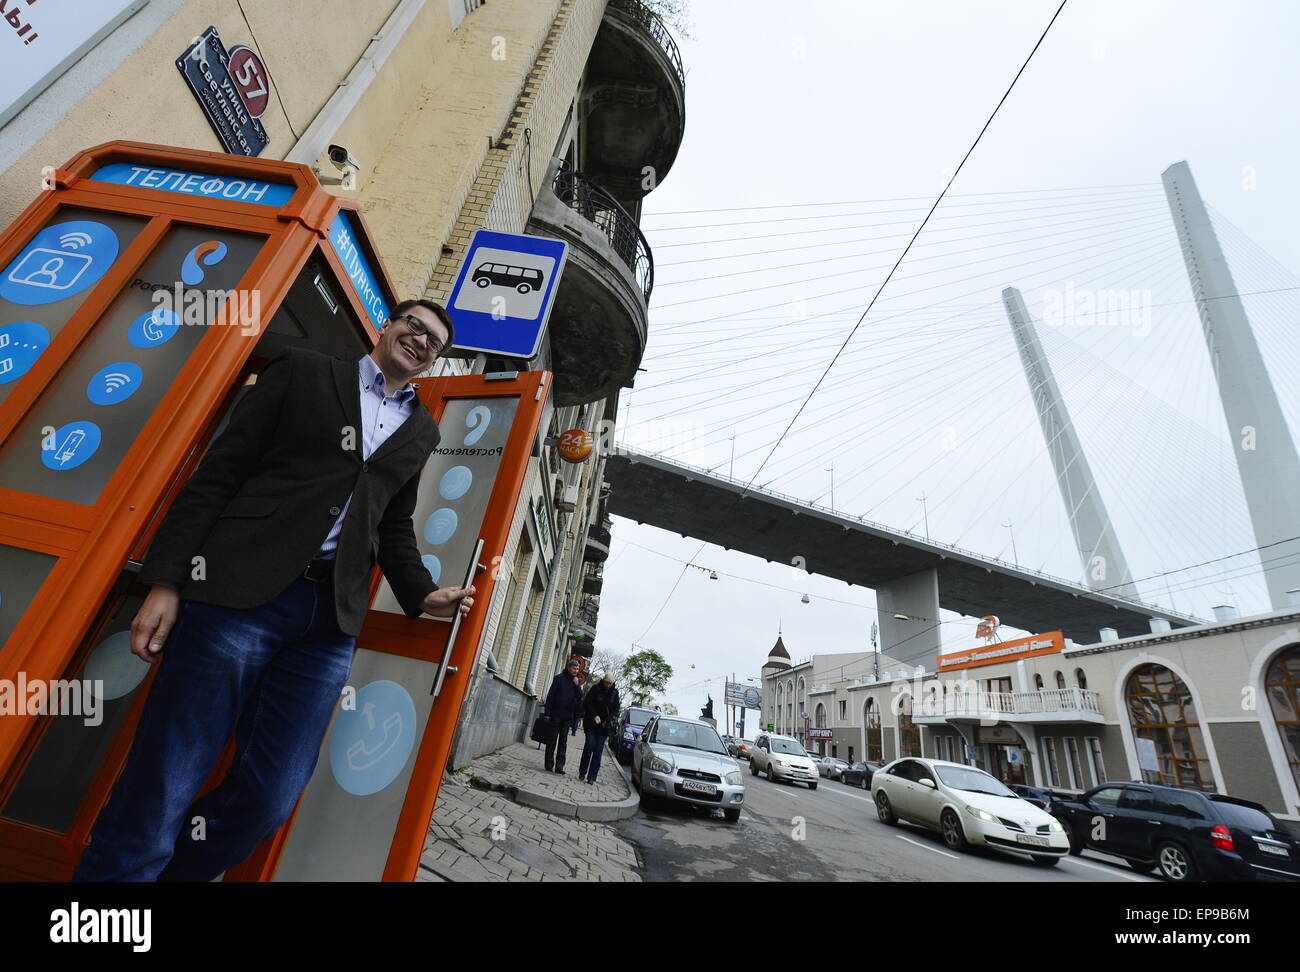 Vladivostok, Russia. 15th May, 2015. A local resident walks out of a multifunctional telephone booth that has been - Stock Image